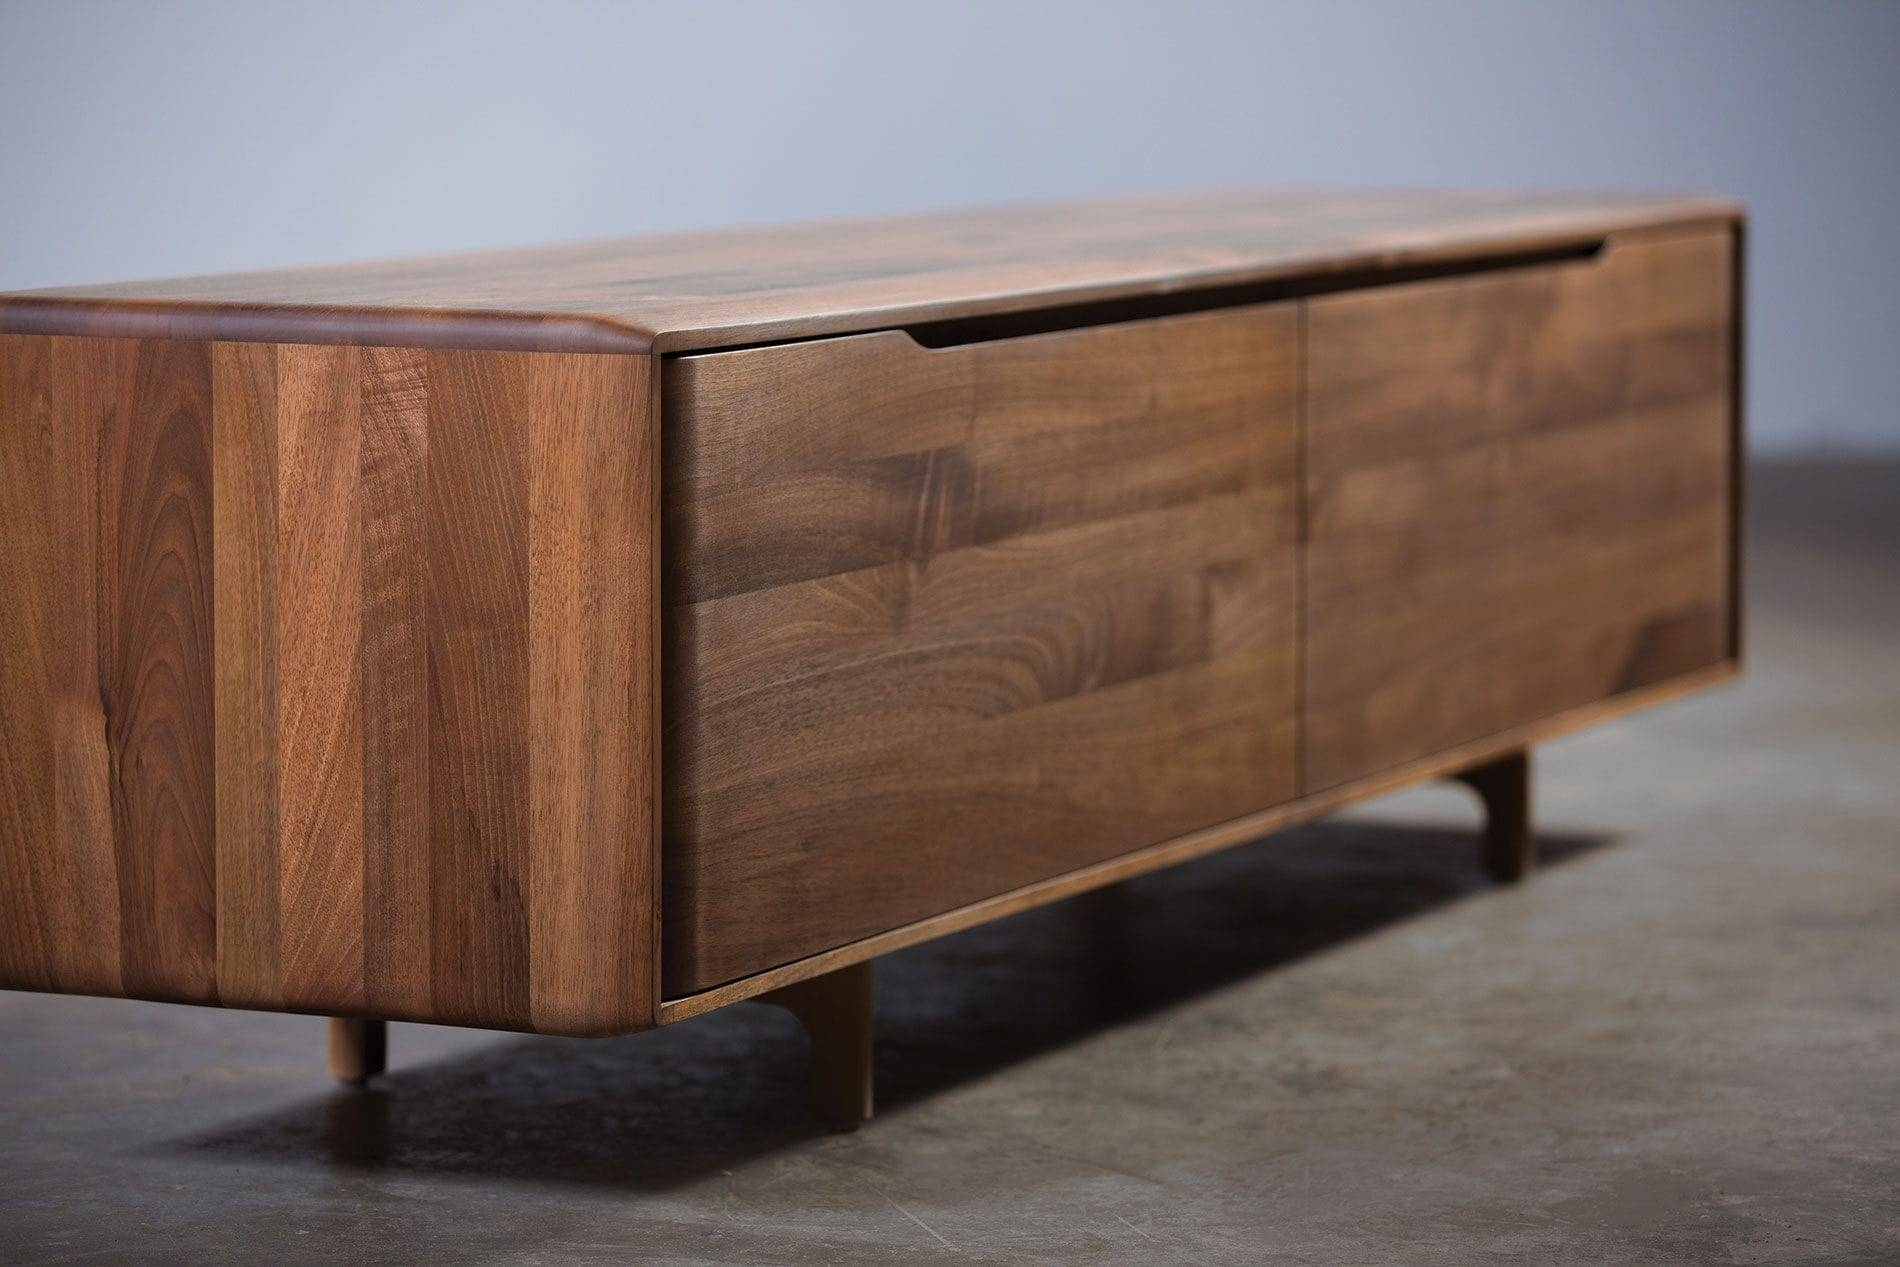 Contemporary Sideboard / Oak / Walnut / Solid Wood - Invito inside Small Dark Wood Sideboards (Image 3 of 30)